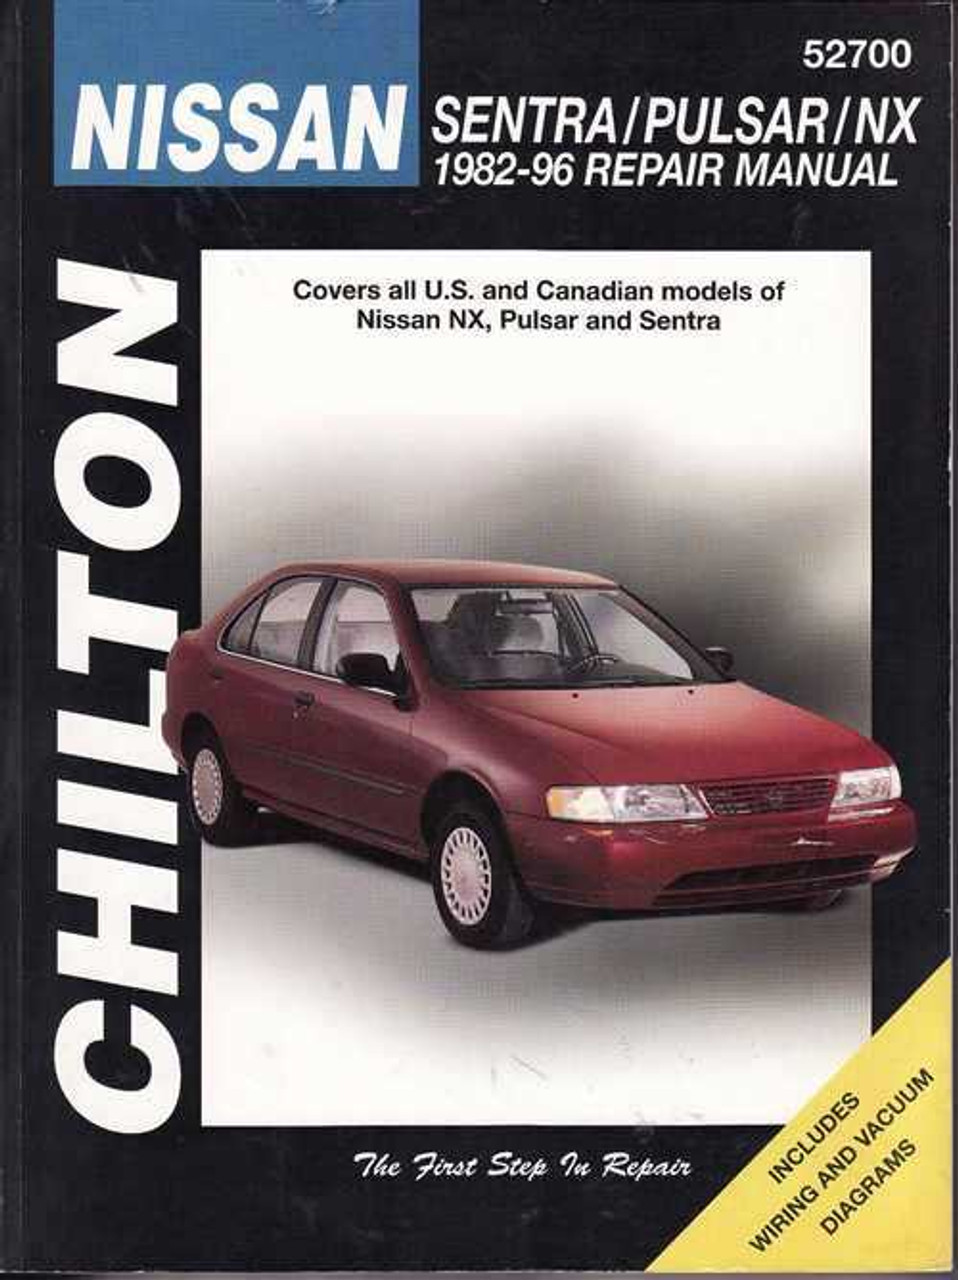 Nissan sentra pulsar nx 1982 1996 workshop manual publicscrutiny Images